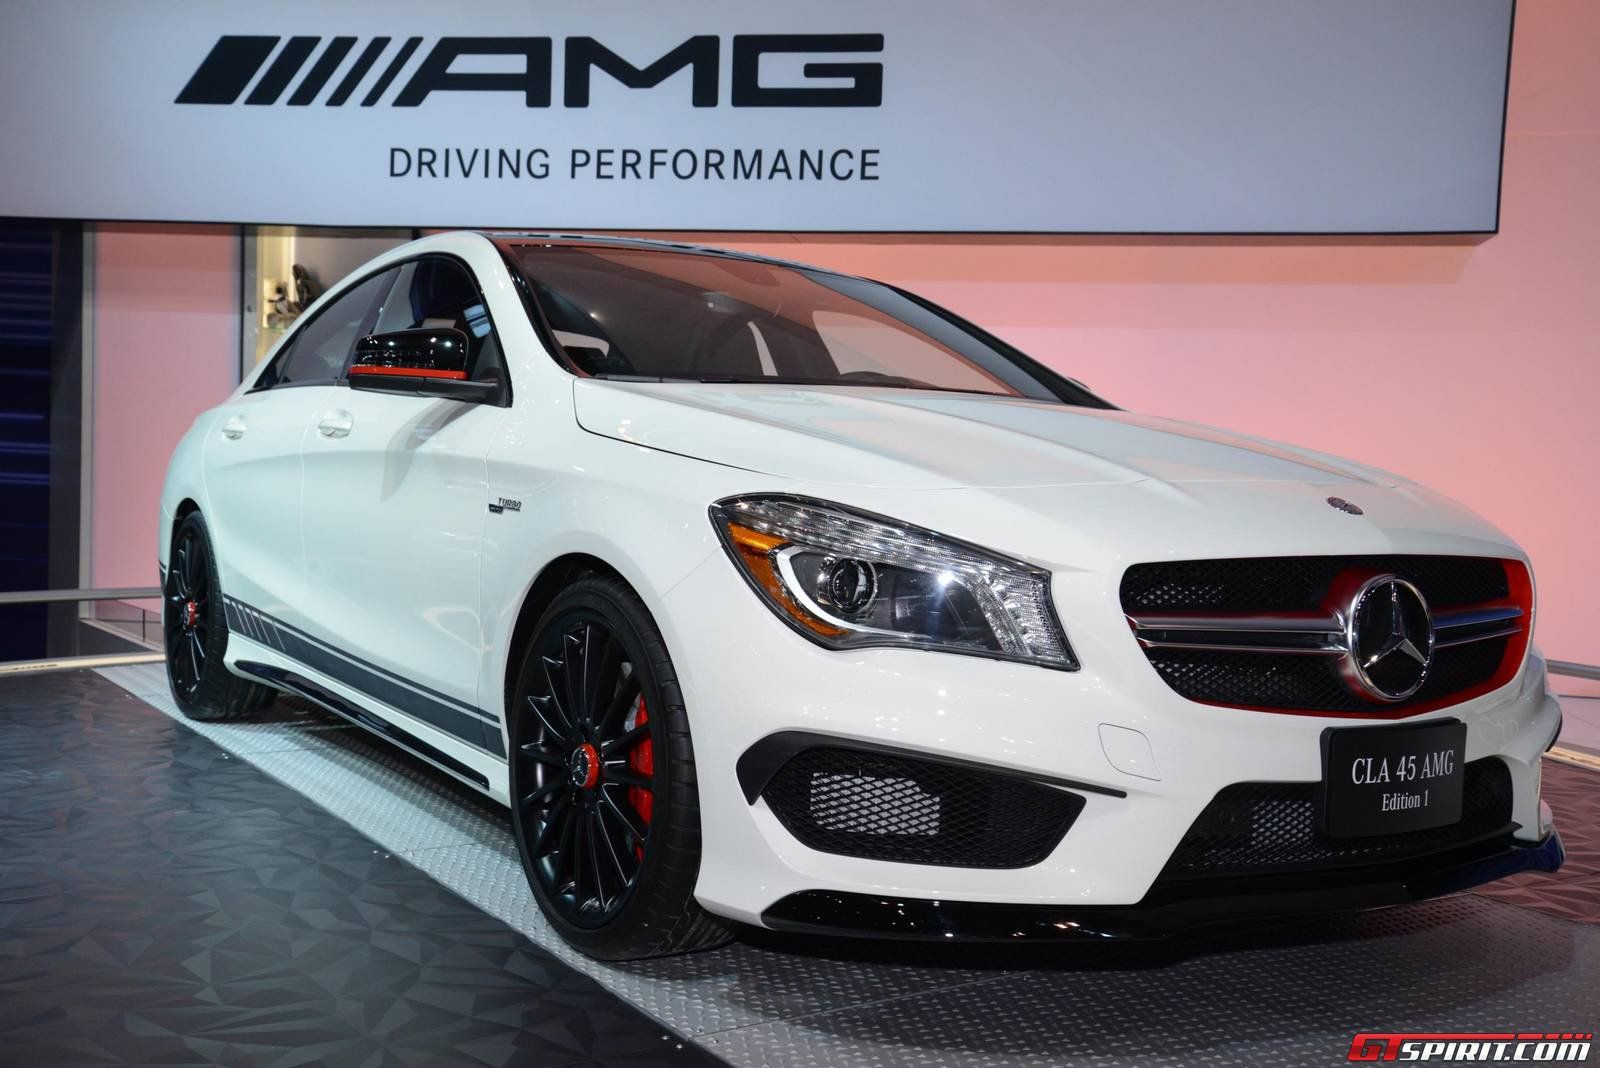 Chicago 2014: Mercedes-Benz CLA 45 AMG - GTspirit